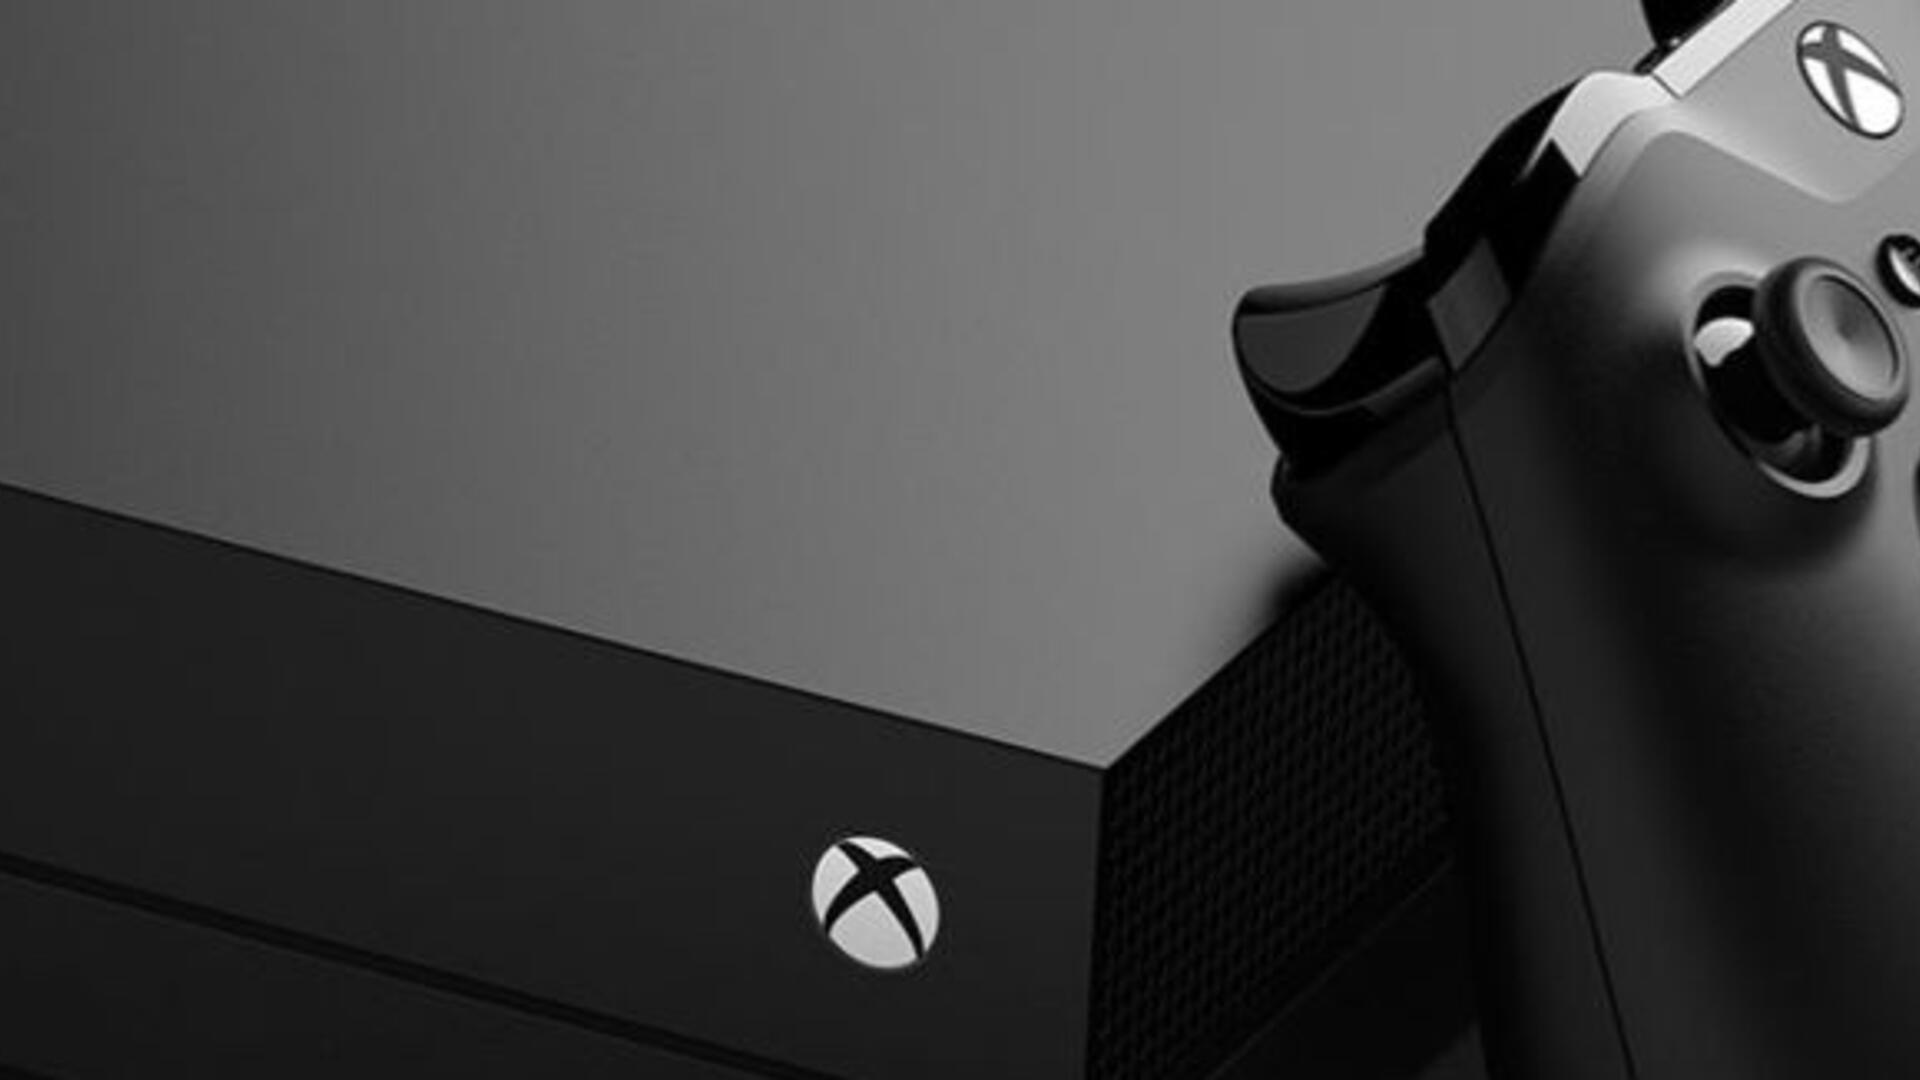 Rare Speaks on the Impending Transition to Next-Gen Xbox